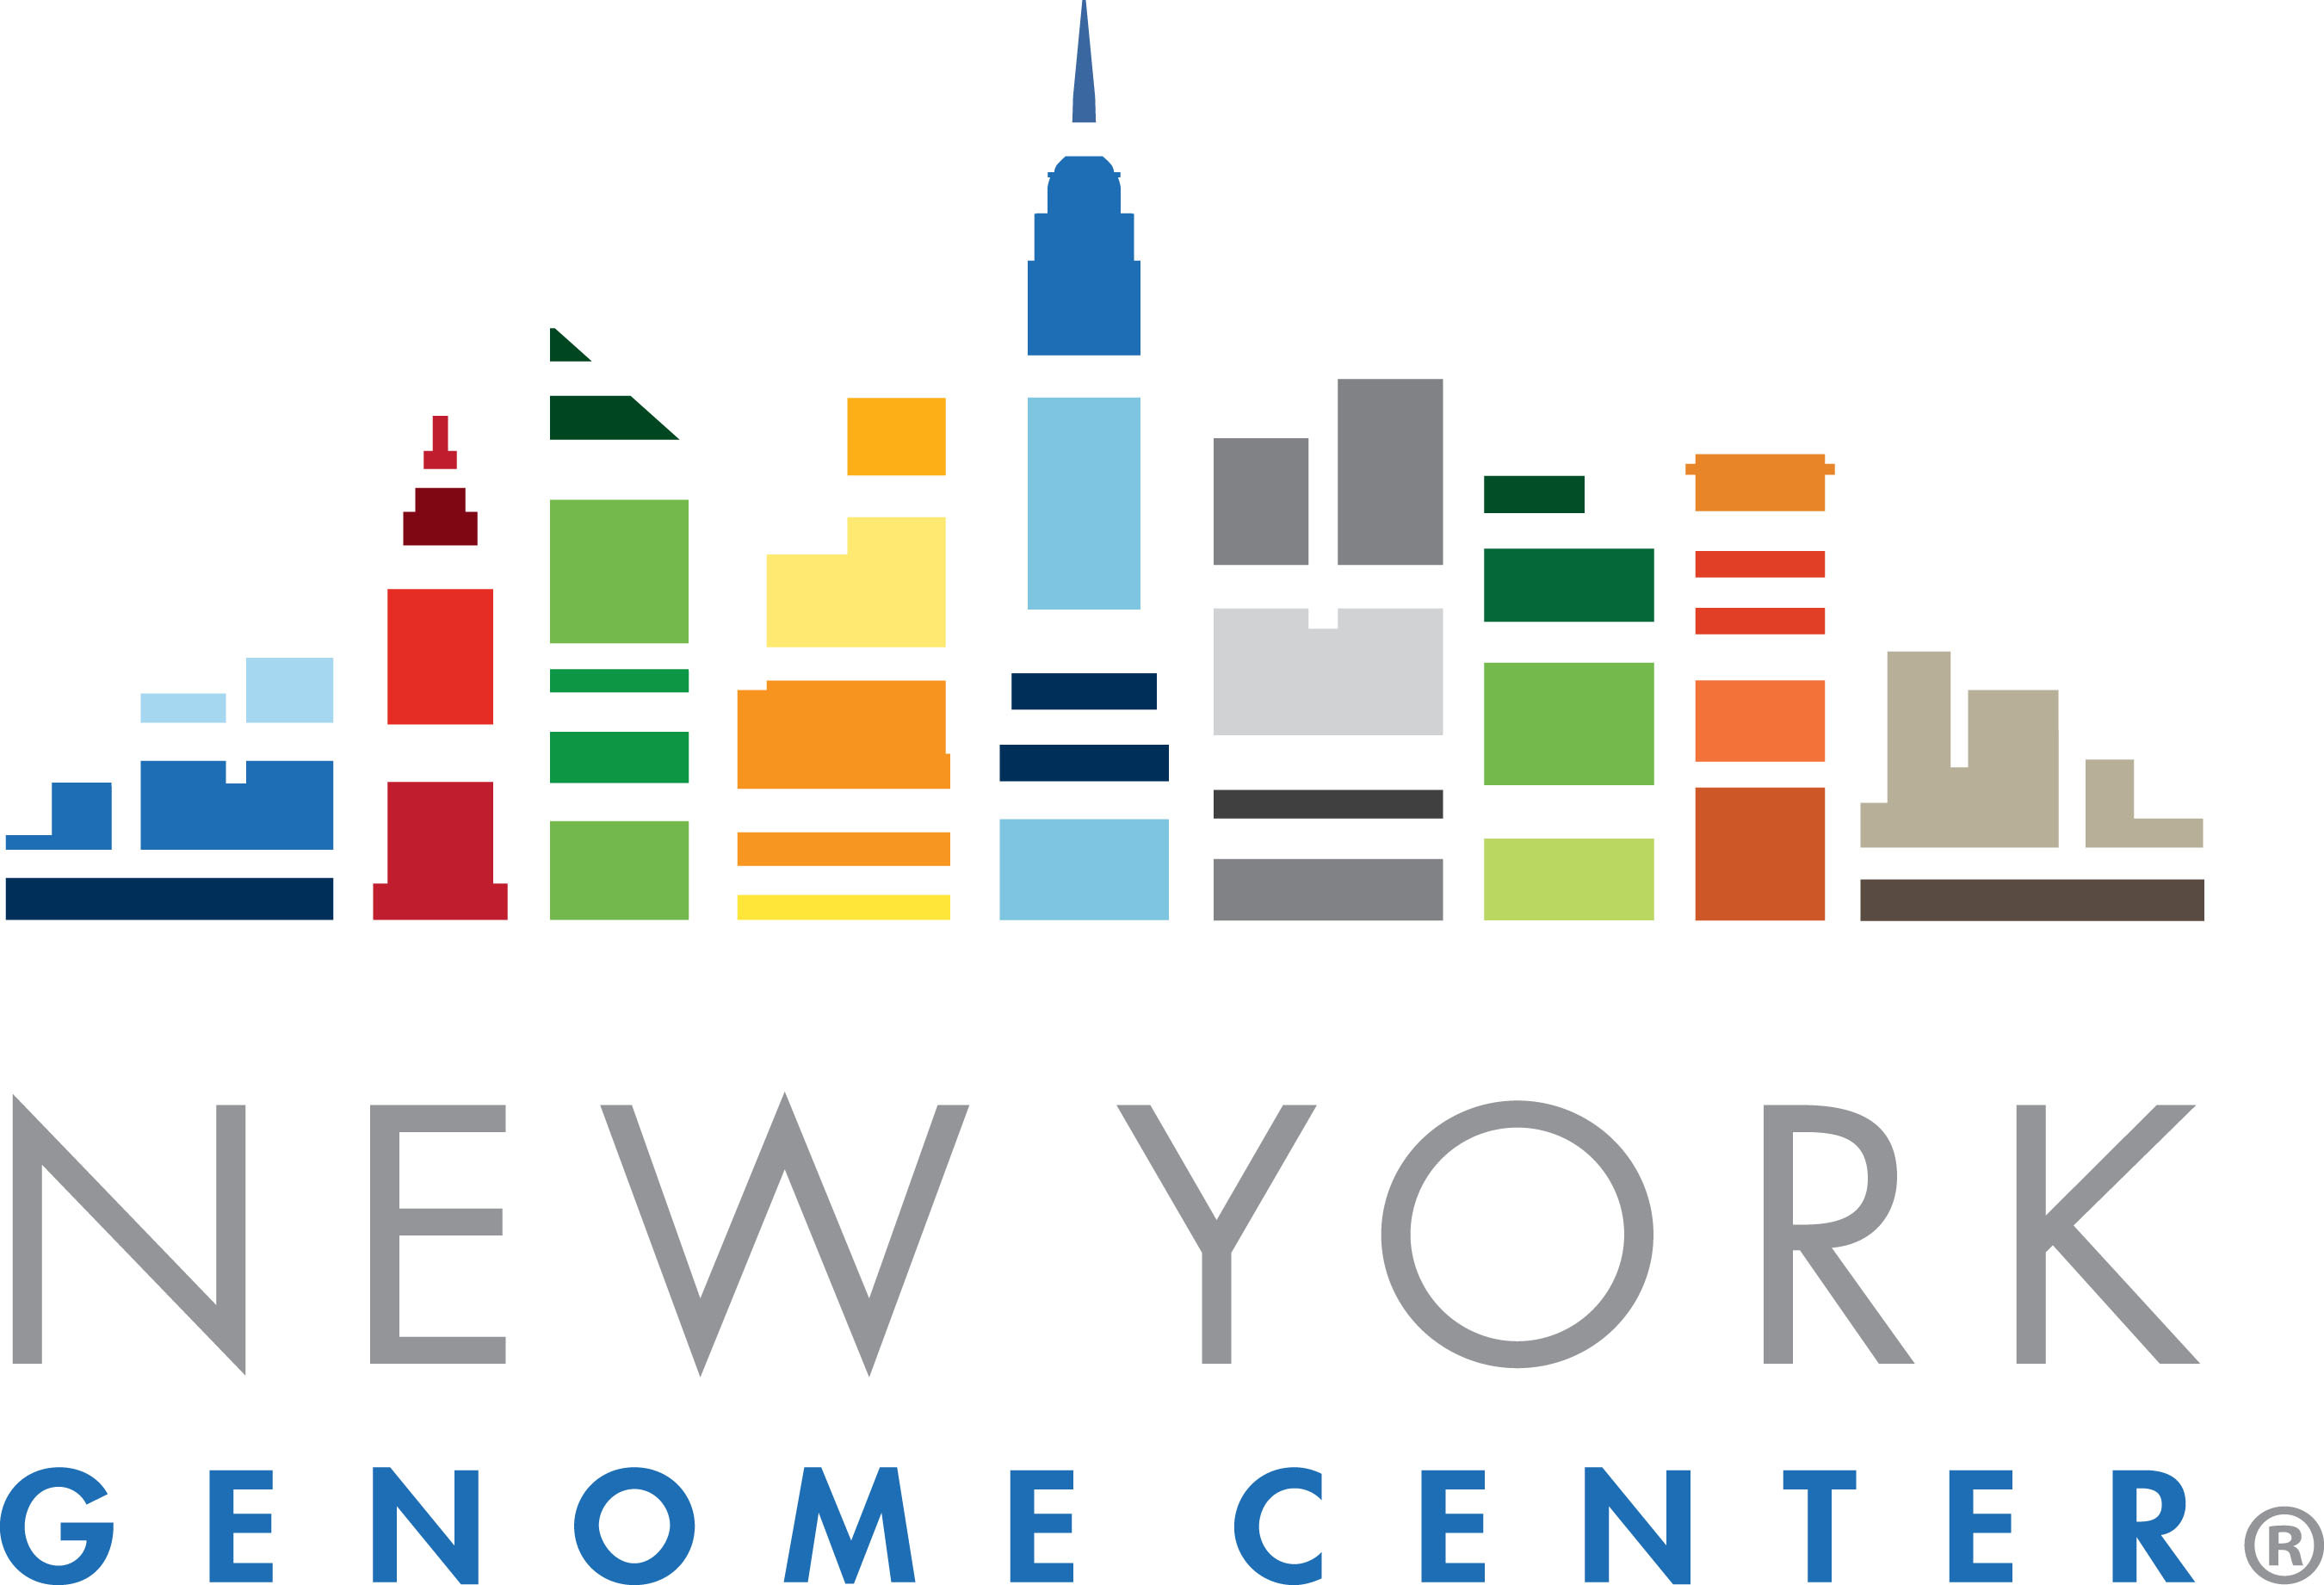 New York Genome Center to Host DNA.Land User Group Meeting